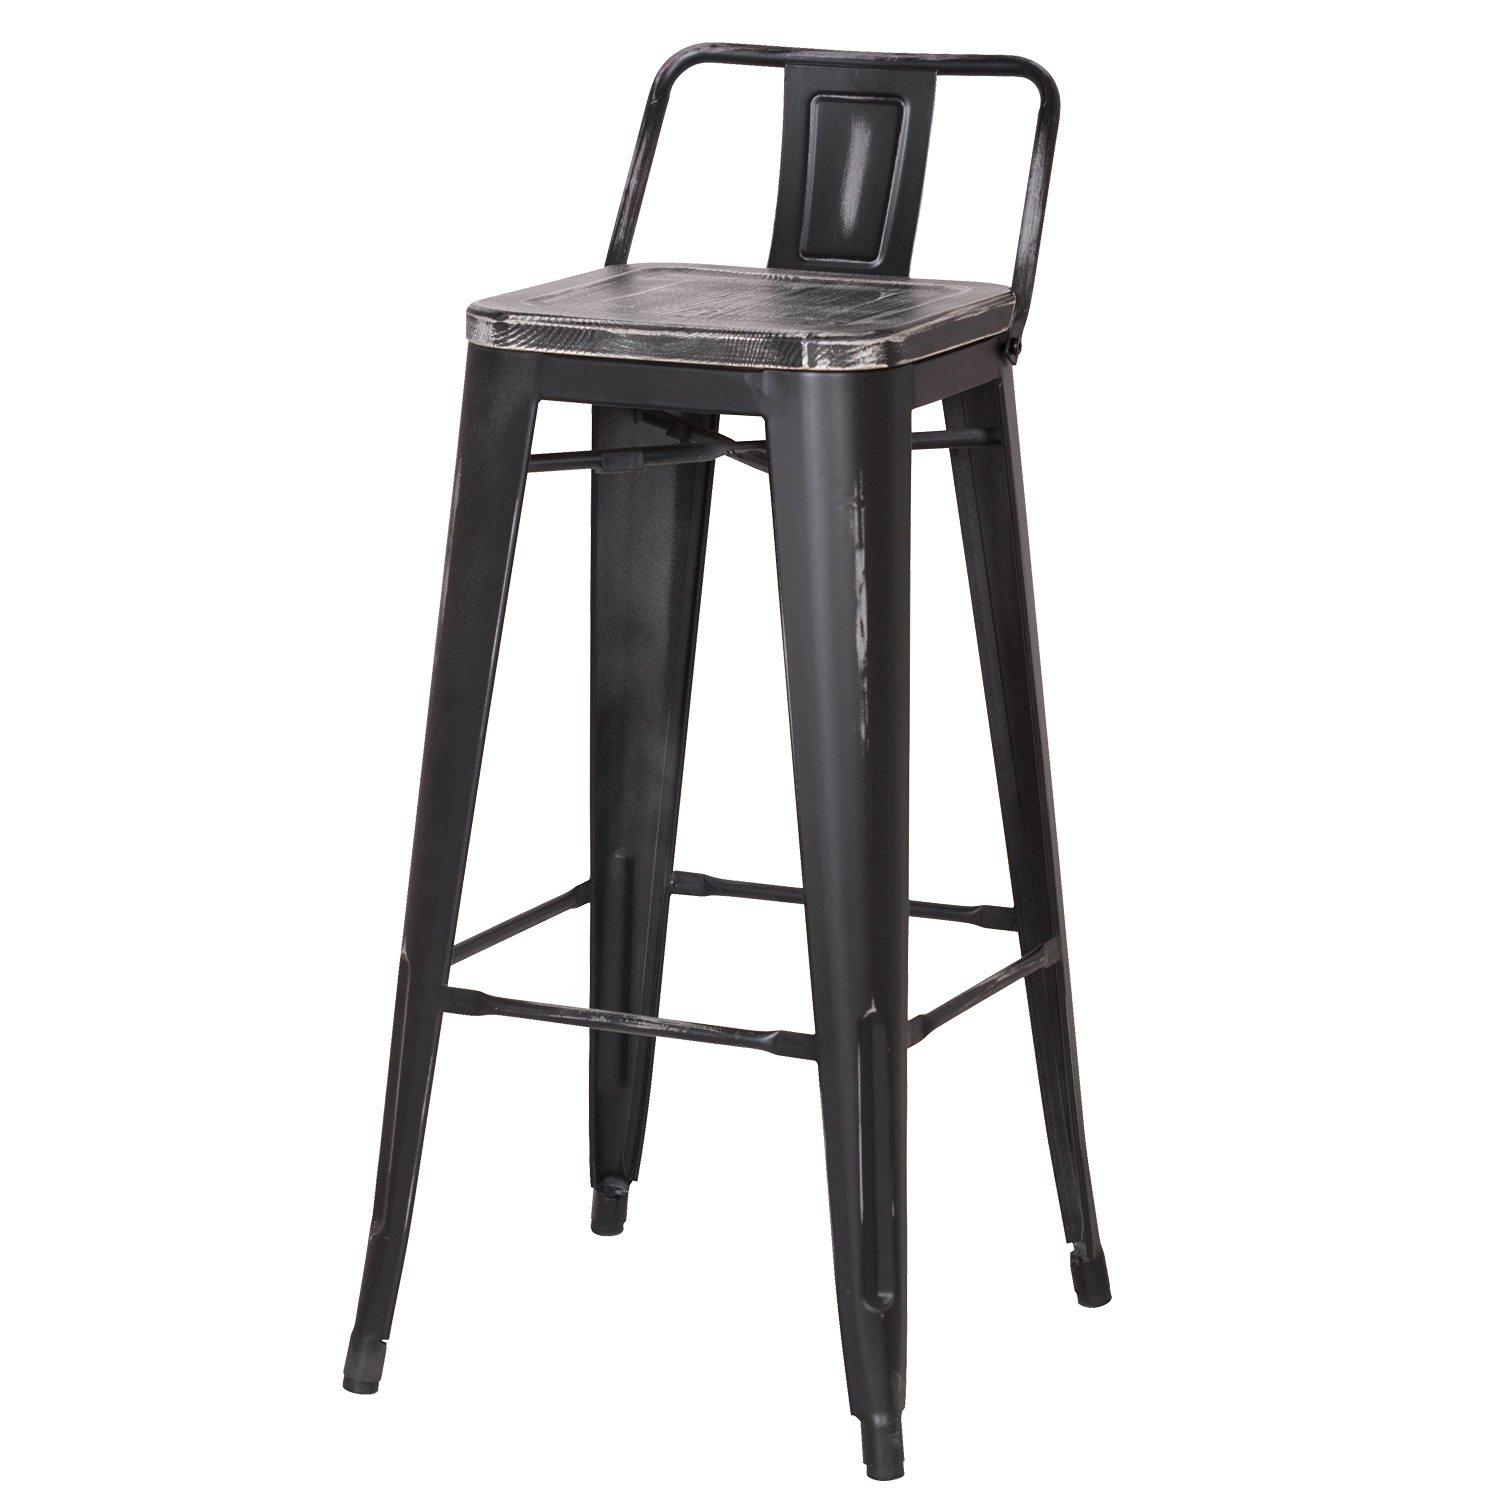 Decenthome Distresed Black Metal Bar Stools With Dark Wooden Seat Ch0276 3 Ach276 3